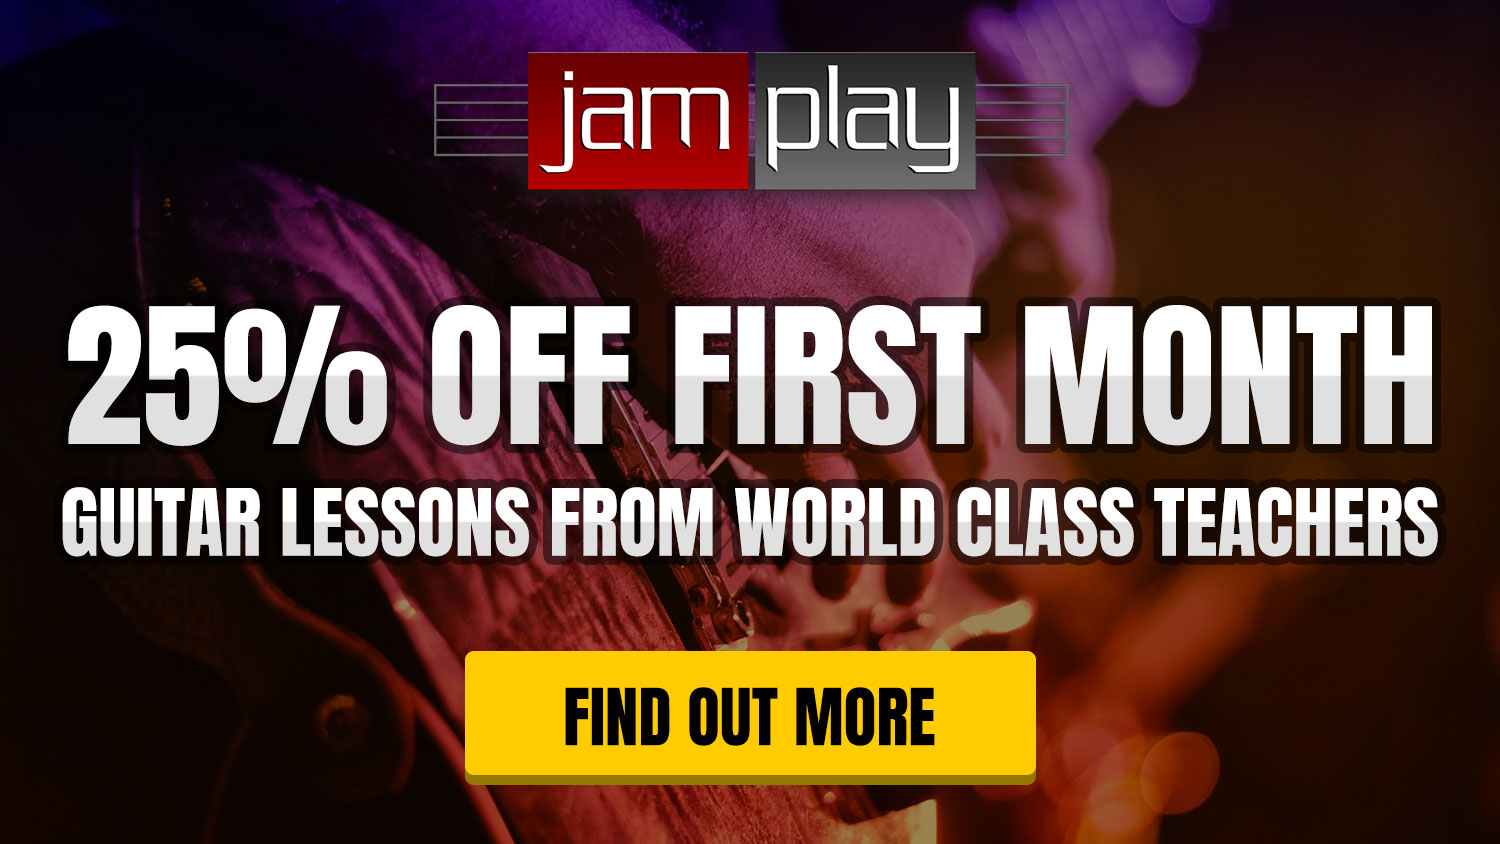 25% OFF first month at JamPlay